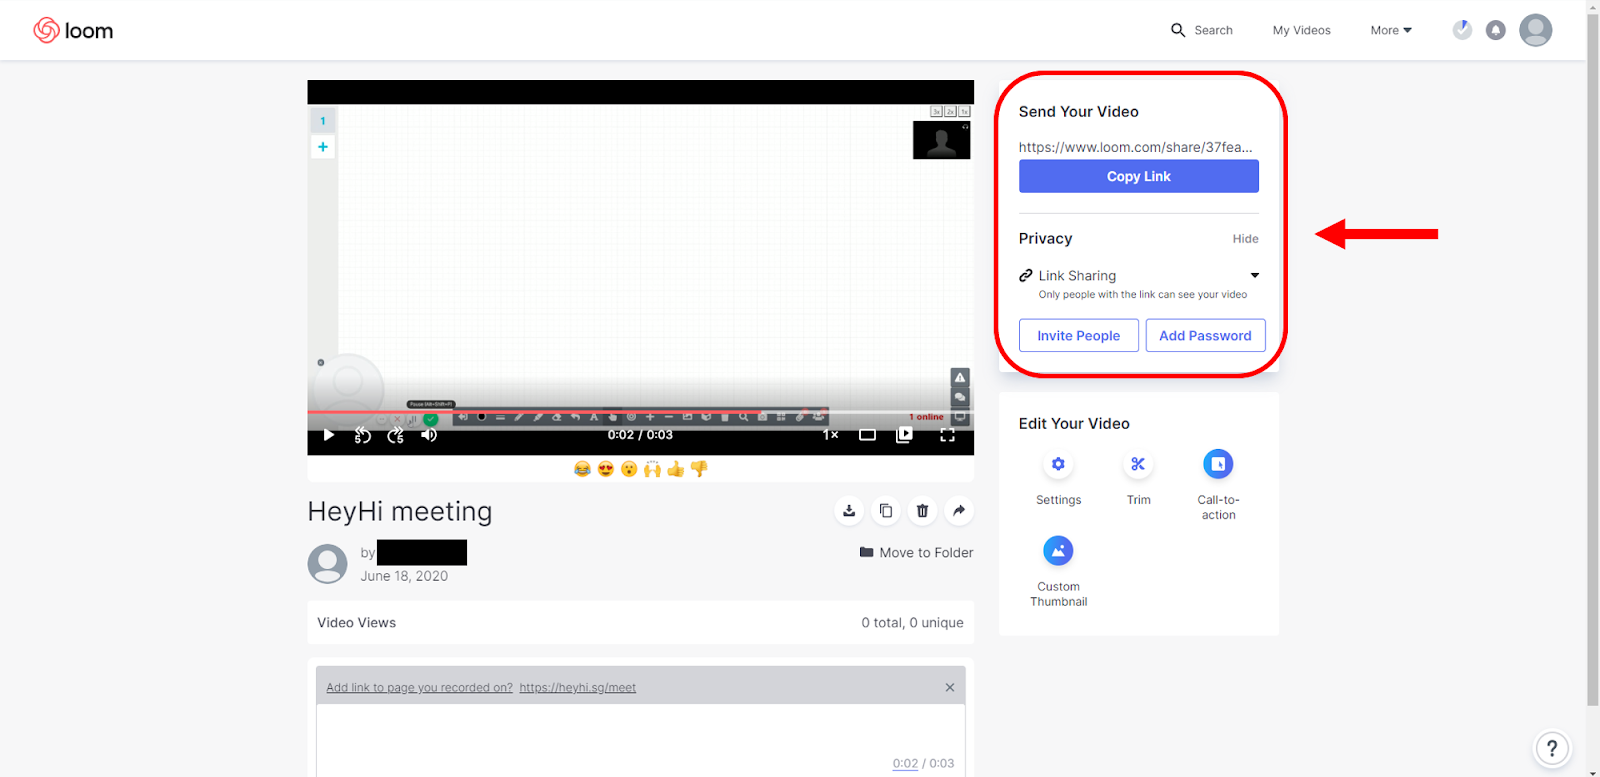 Share online whiteboard recording through Loom